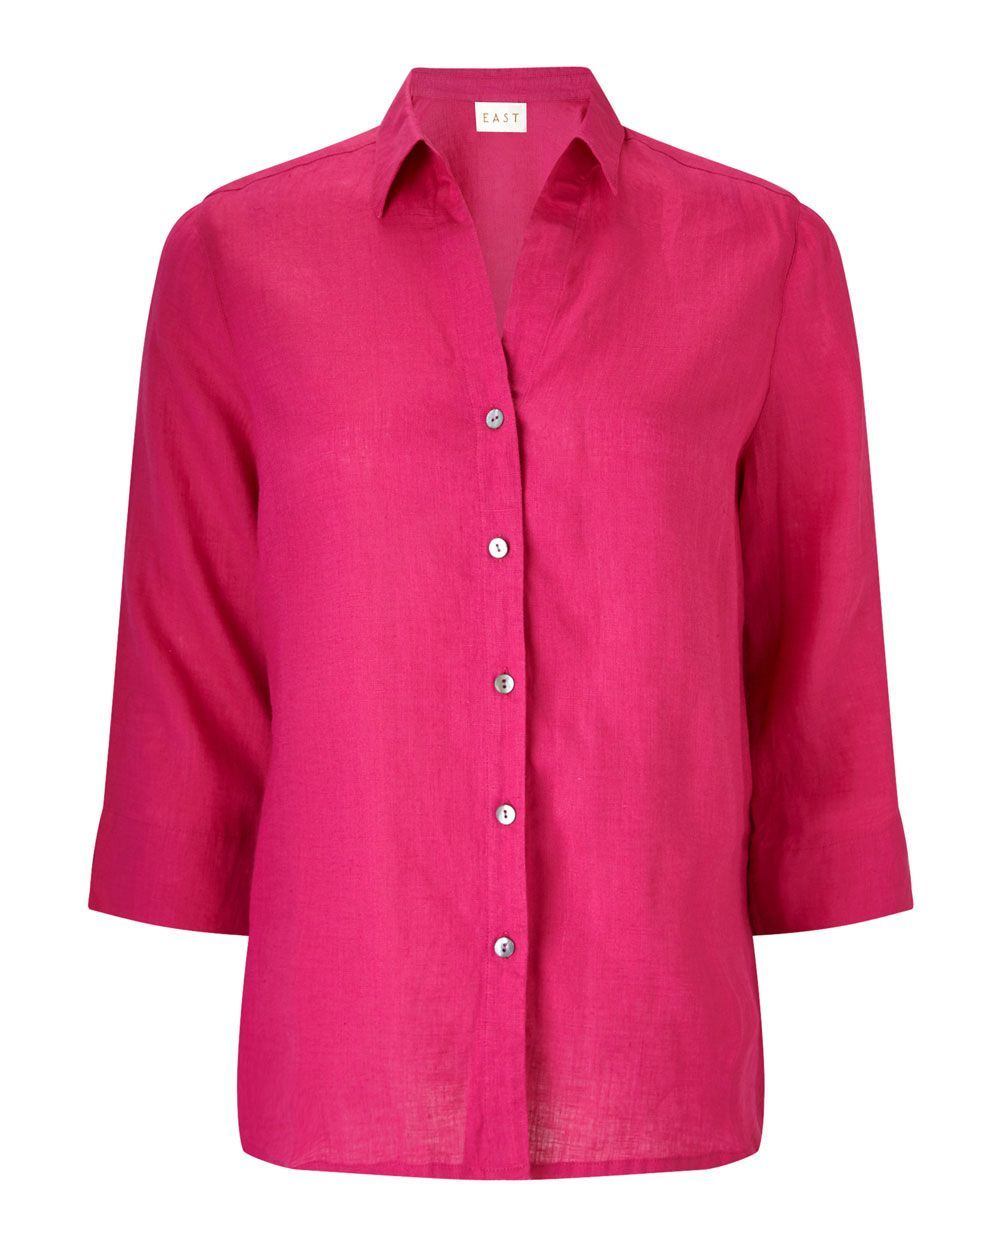 Linen Fitted Shirt, Pink - neckline: shirt collar/peter pan/zip with opening; pattern: plain; style: shirt; predominant colour: hot pink; occasions: casual, creative work; length: standard; fibres: linen - 100%; fit: body skimming; sleeve length: 3/4 length; sleeve style: standard; texture group: linen; pattern type: fabric; season: s/s 2016; wardrobe: highlight